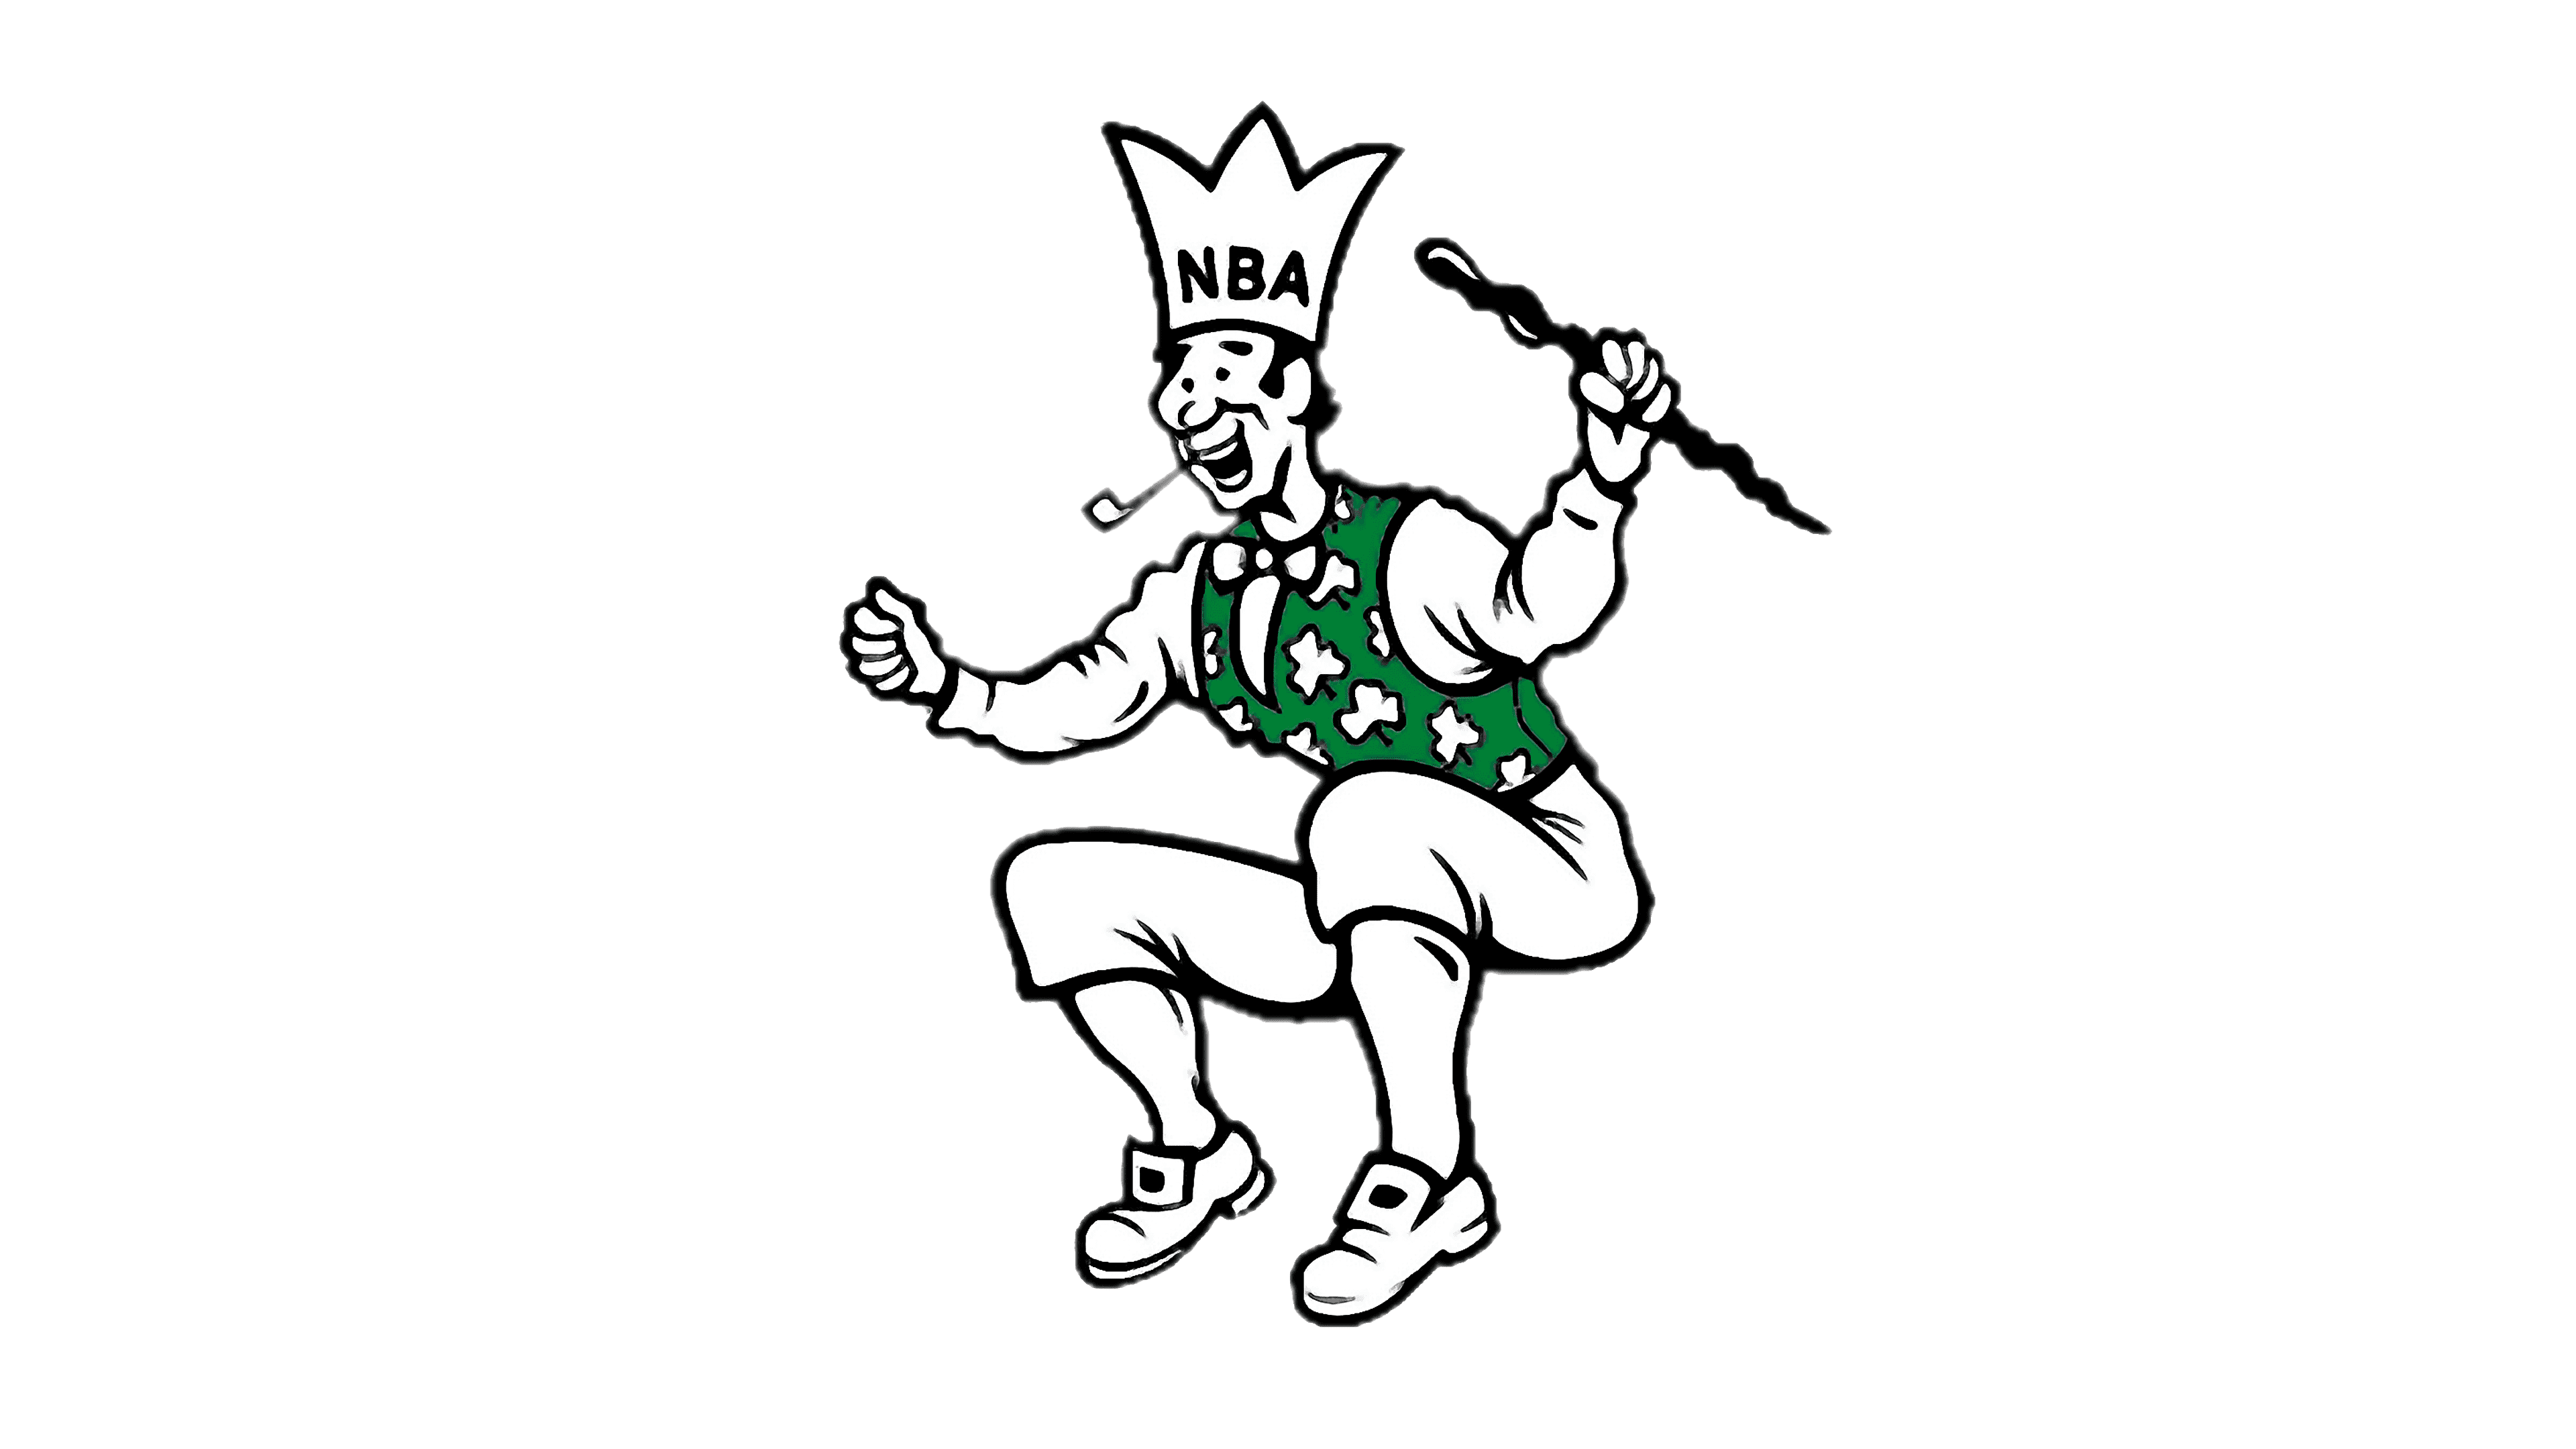 Boston Celtics Logo The Most Famous Brands And Company Logos In The World